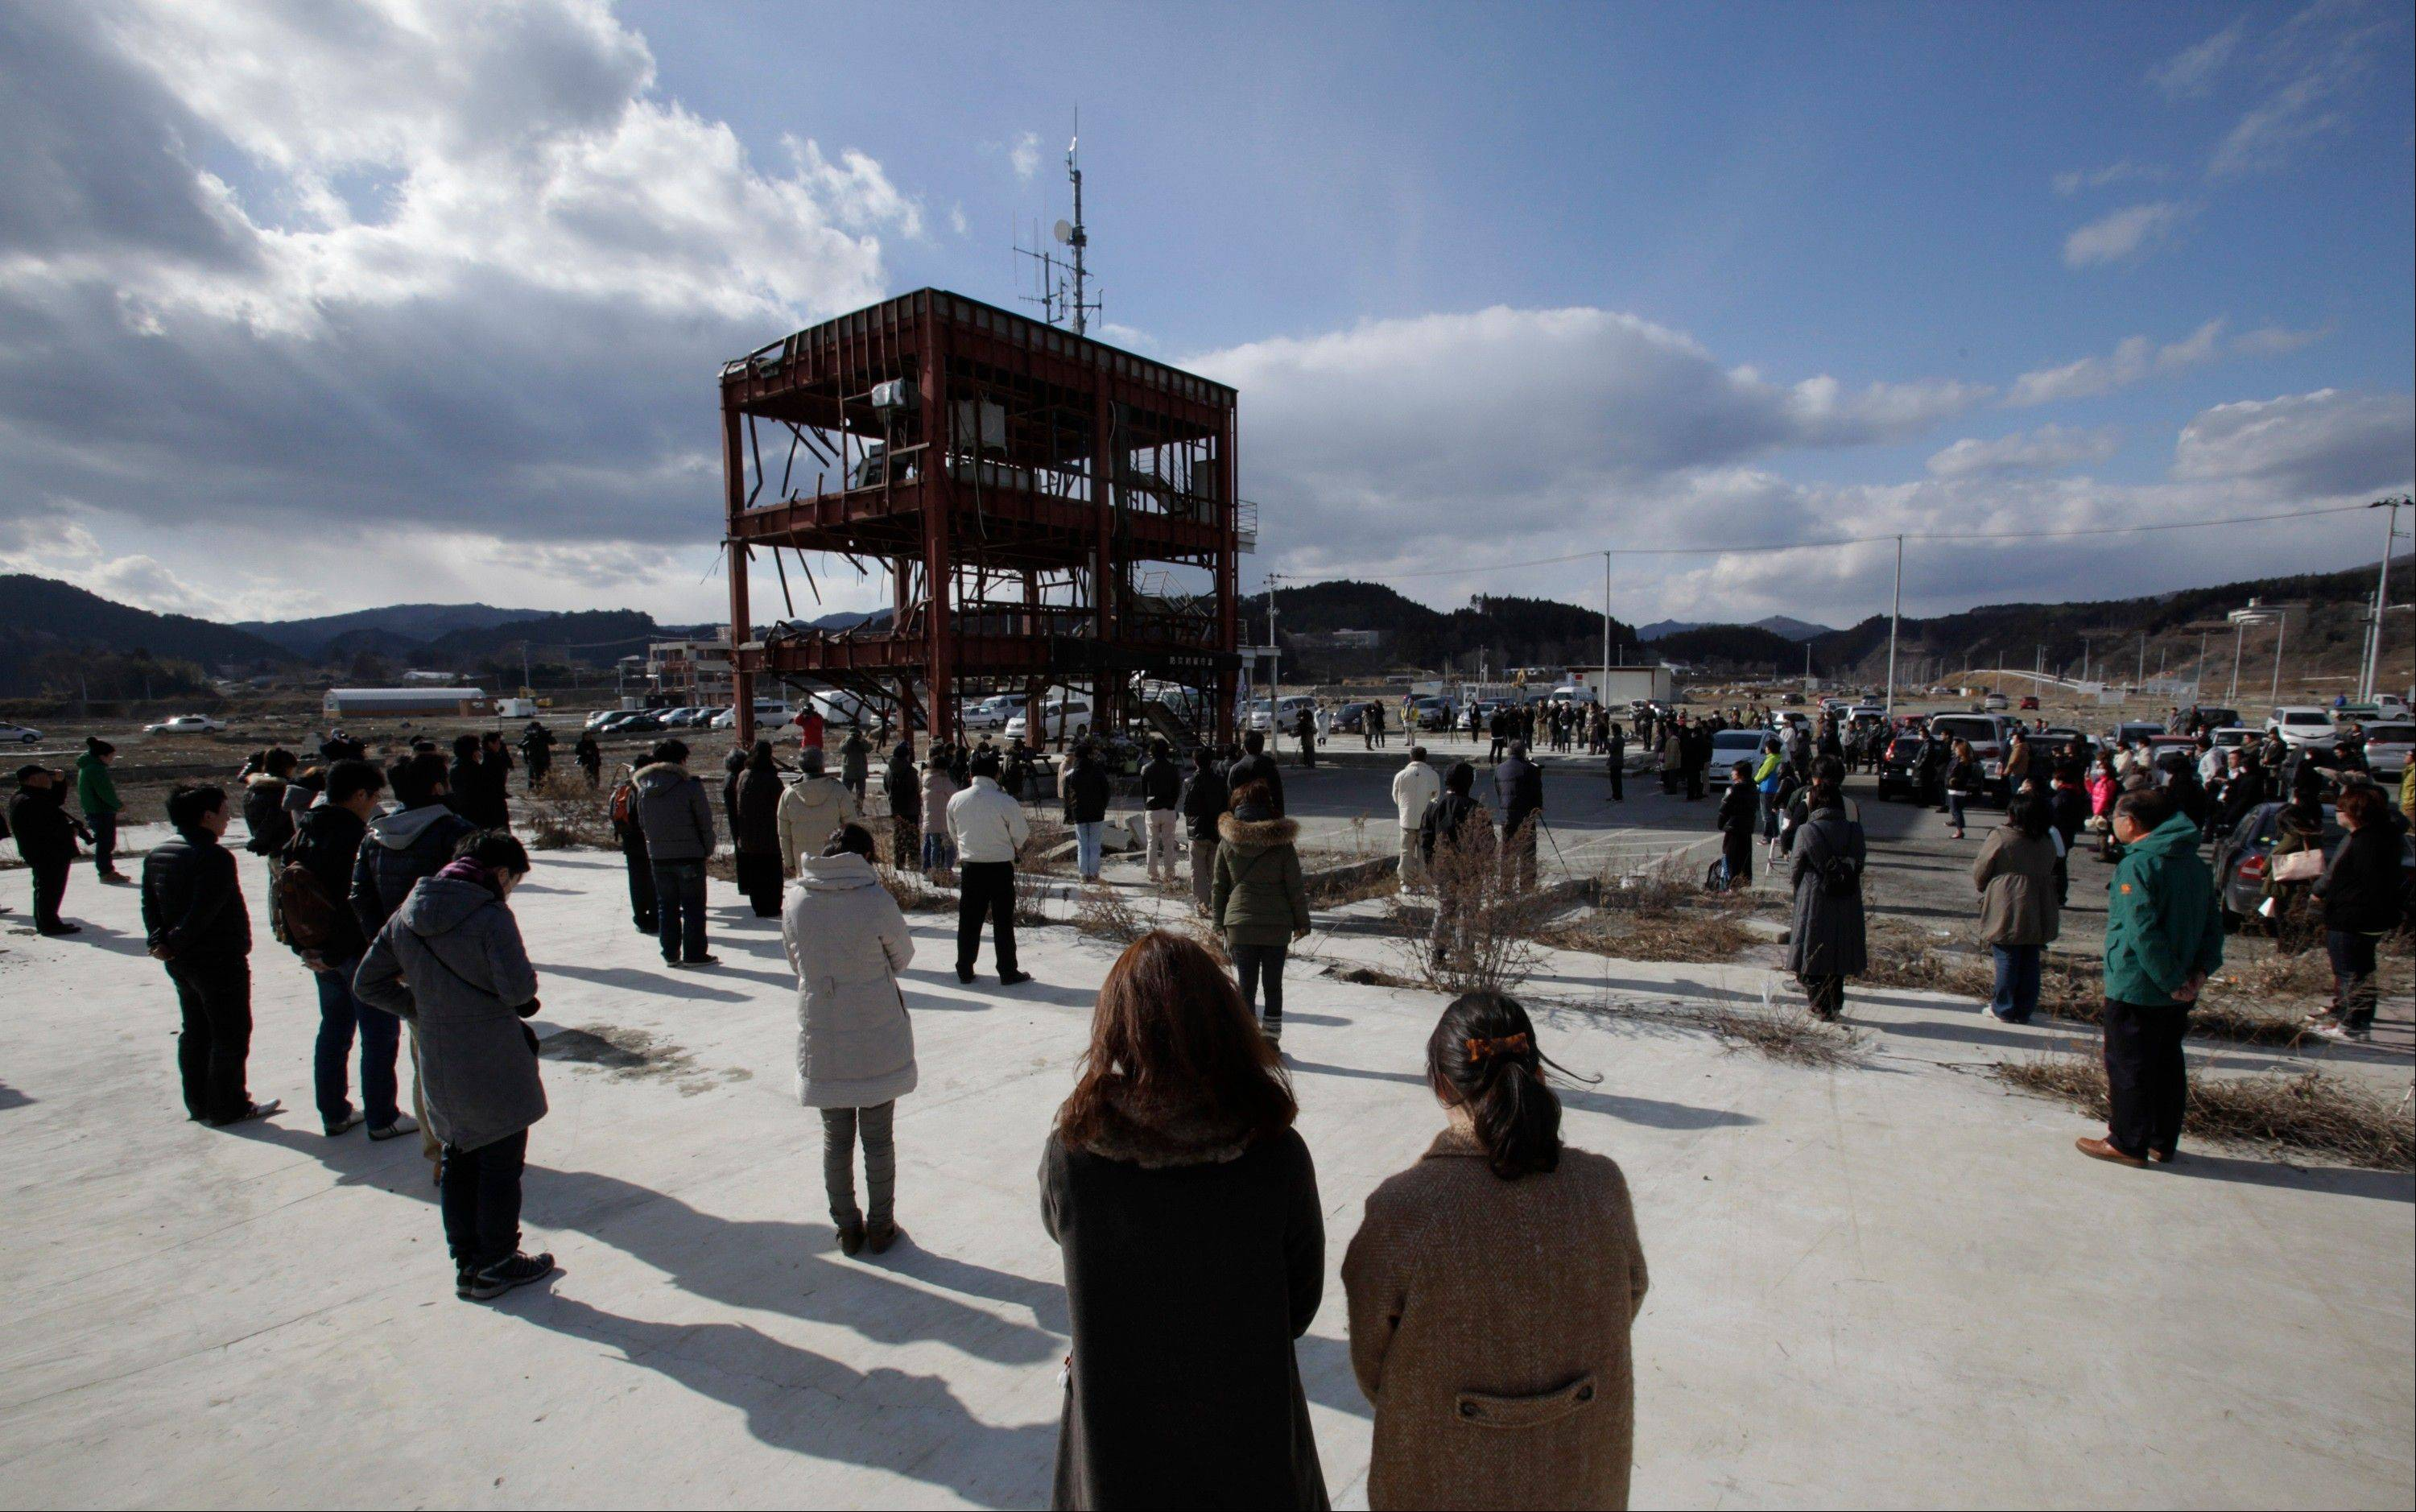 Gathering around what is left of a disaster control center devastated by the March 11, 2011 earthquake and tsunami, people bow their heads Monday, March 11, 2013 in Minamisanriku, Miyagi prefecture, Japan, in a moment of silence at 2:46 p.m. when the magnitude 9.0 earthquake struck off Japan's northeastern coast. Japan marked the second anniversary on Monday of a devastating disasters that left nearly 19,000 people dead or missing.